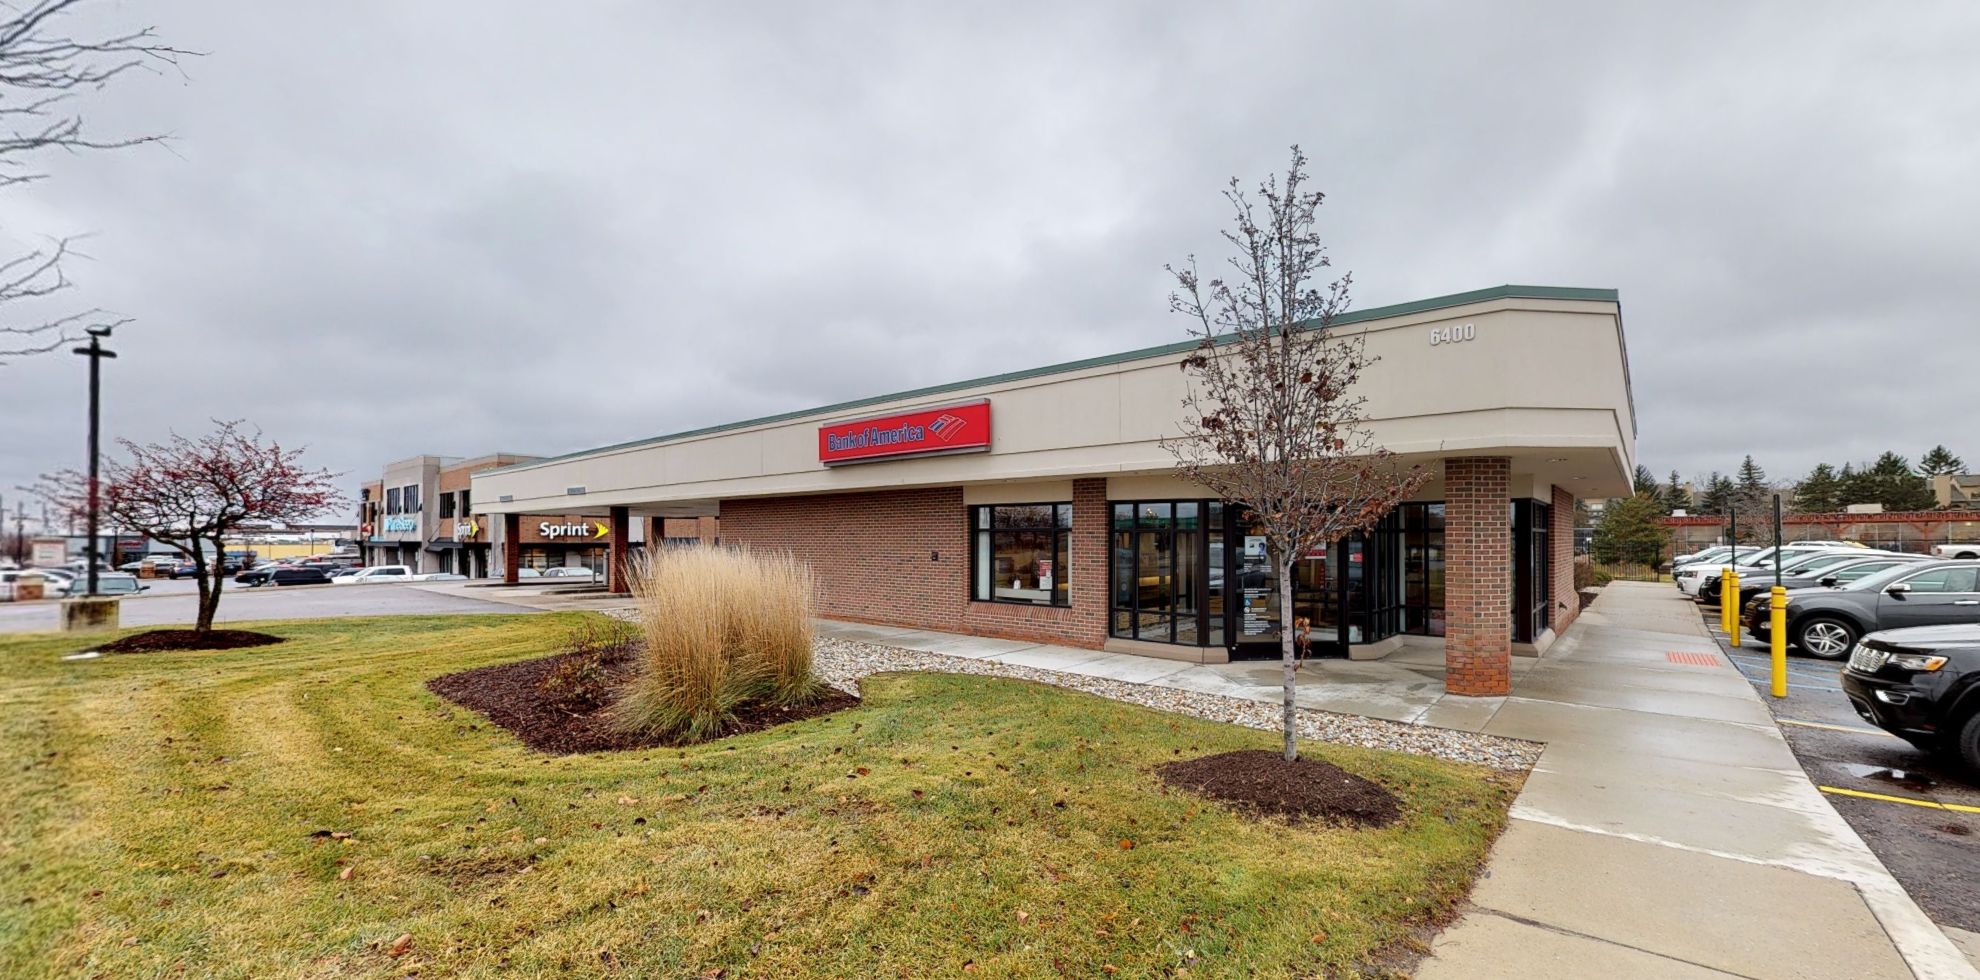 Bank of America financial center with drive-thru ATM | 6400 Orchard Lake Rd, West Bloomfield, MI 48322